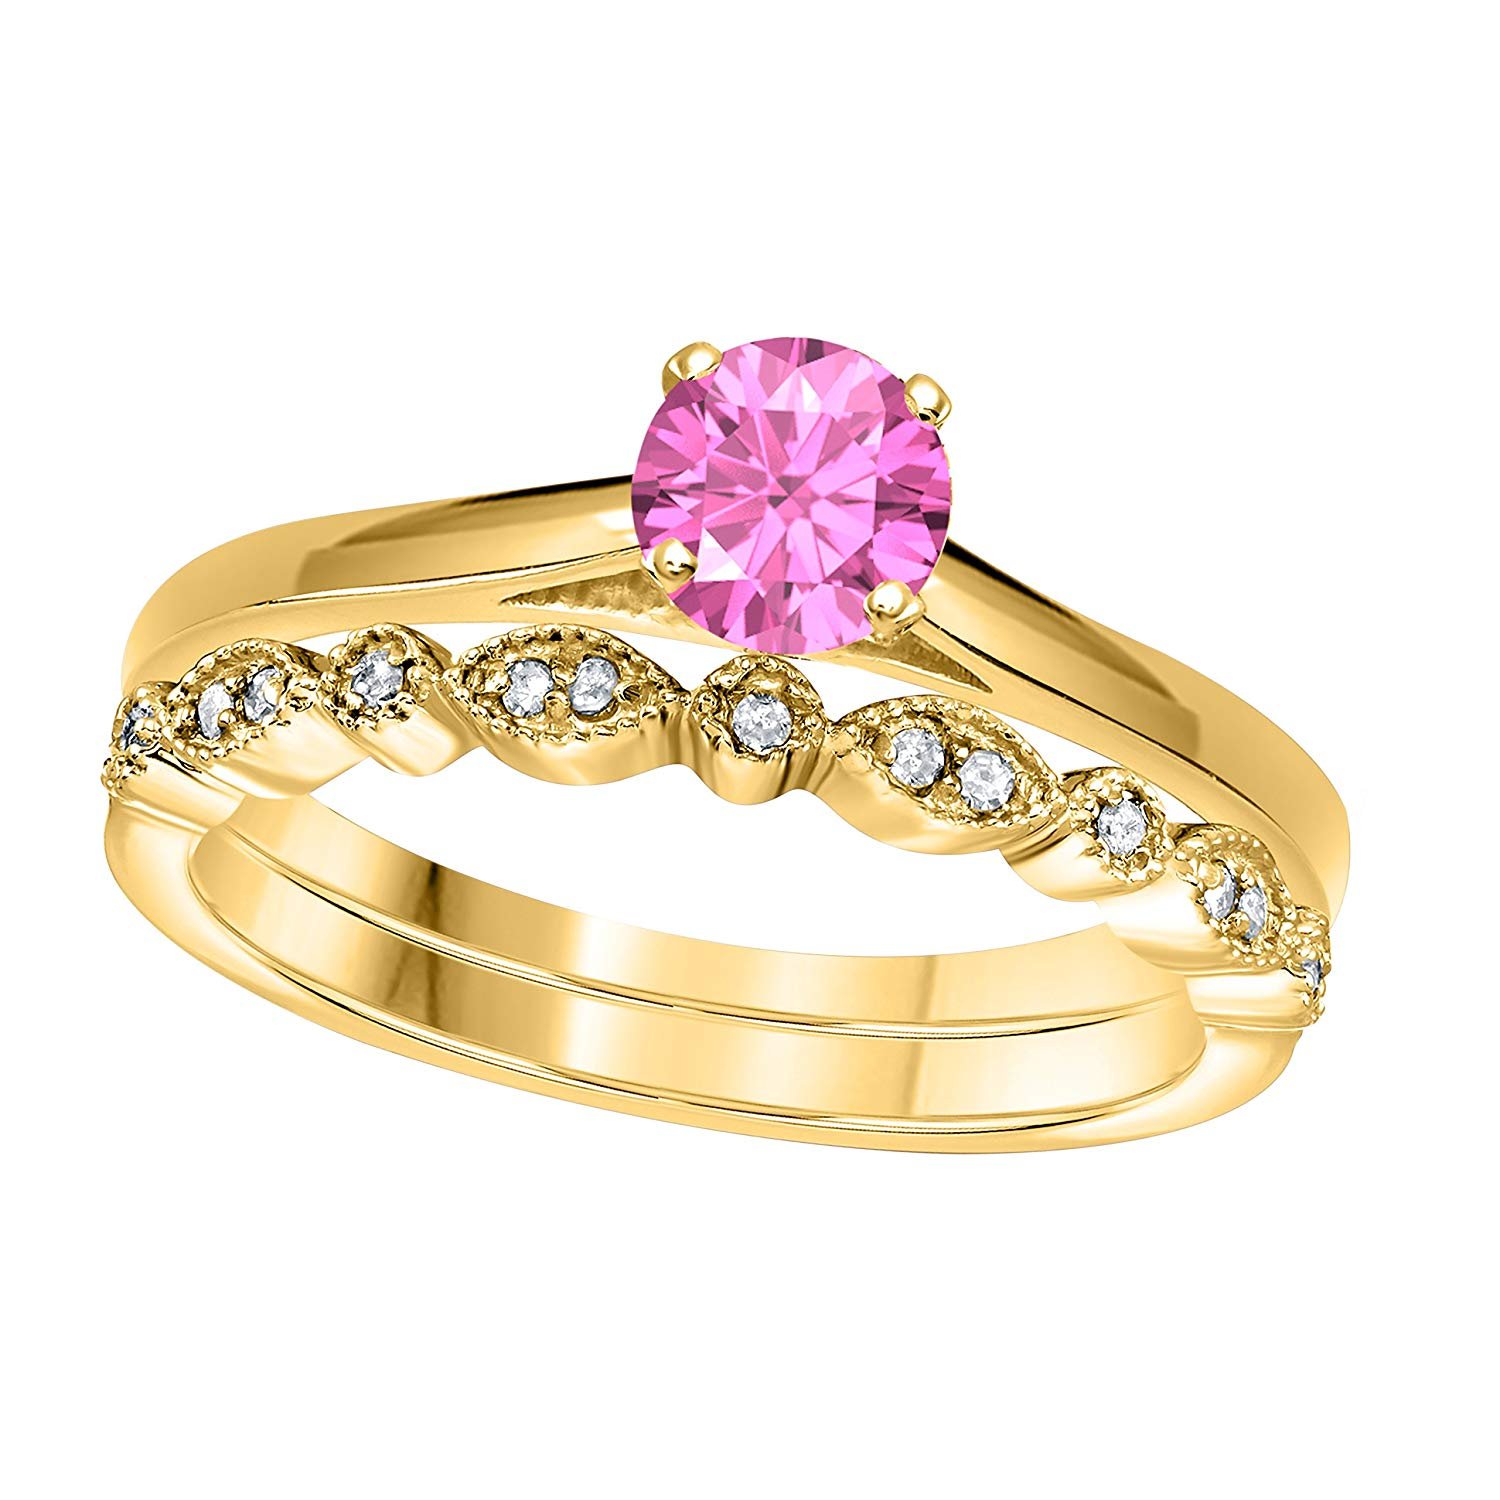 Jewelryhub 1.00 Ct Round Cut Pink Sapphire & White CZ Diamond 14k Yellow Gold Plated Sterling Silver Art Deco Vintage Design Wedding Bridal Ring Wedding Ring Set Engagement Ring Sets Size 5-10